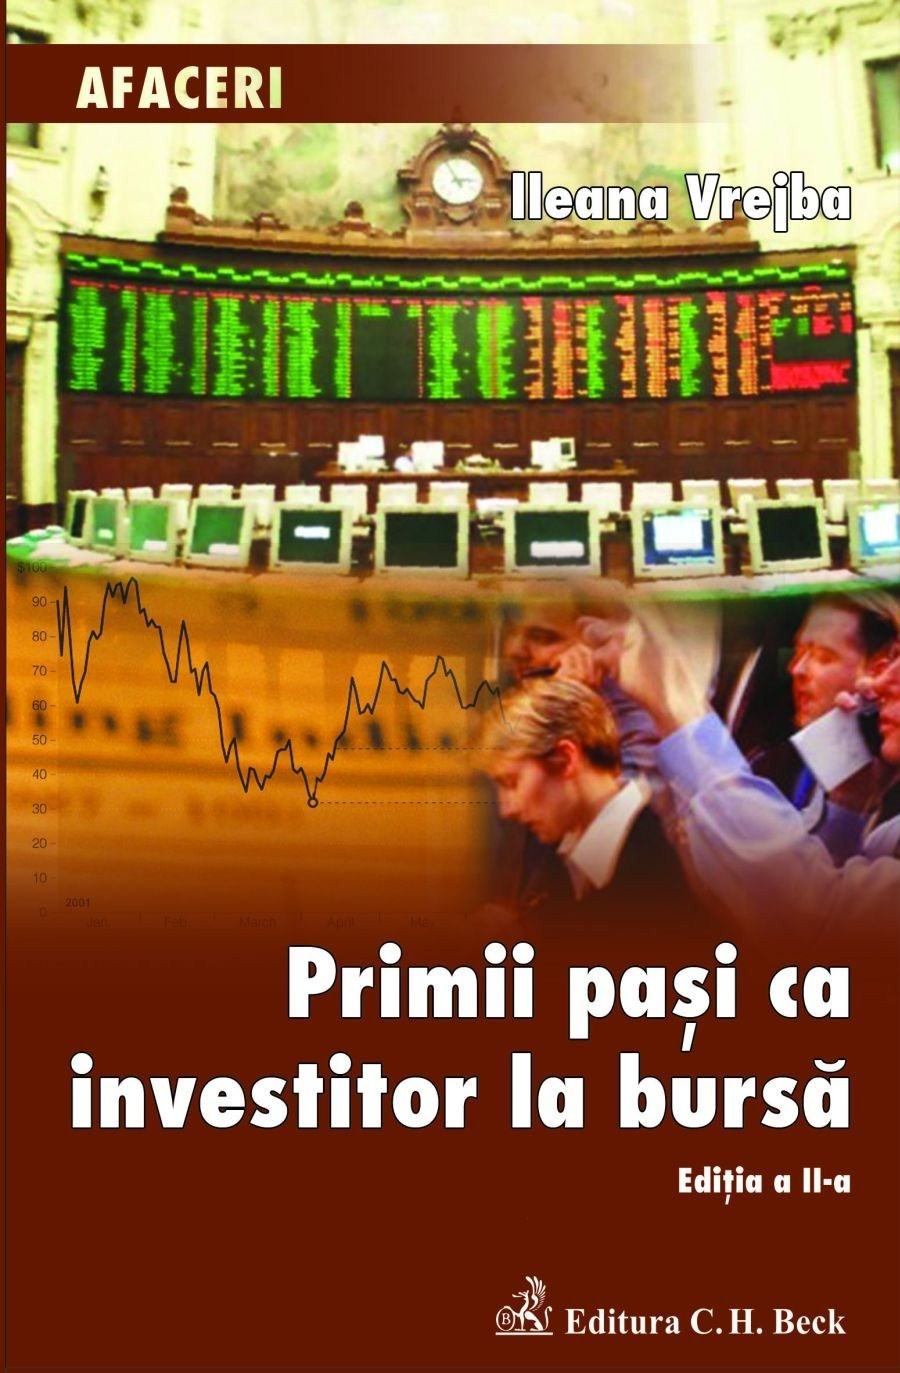 Primii pasi investitor bursa